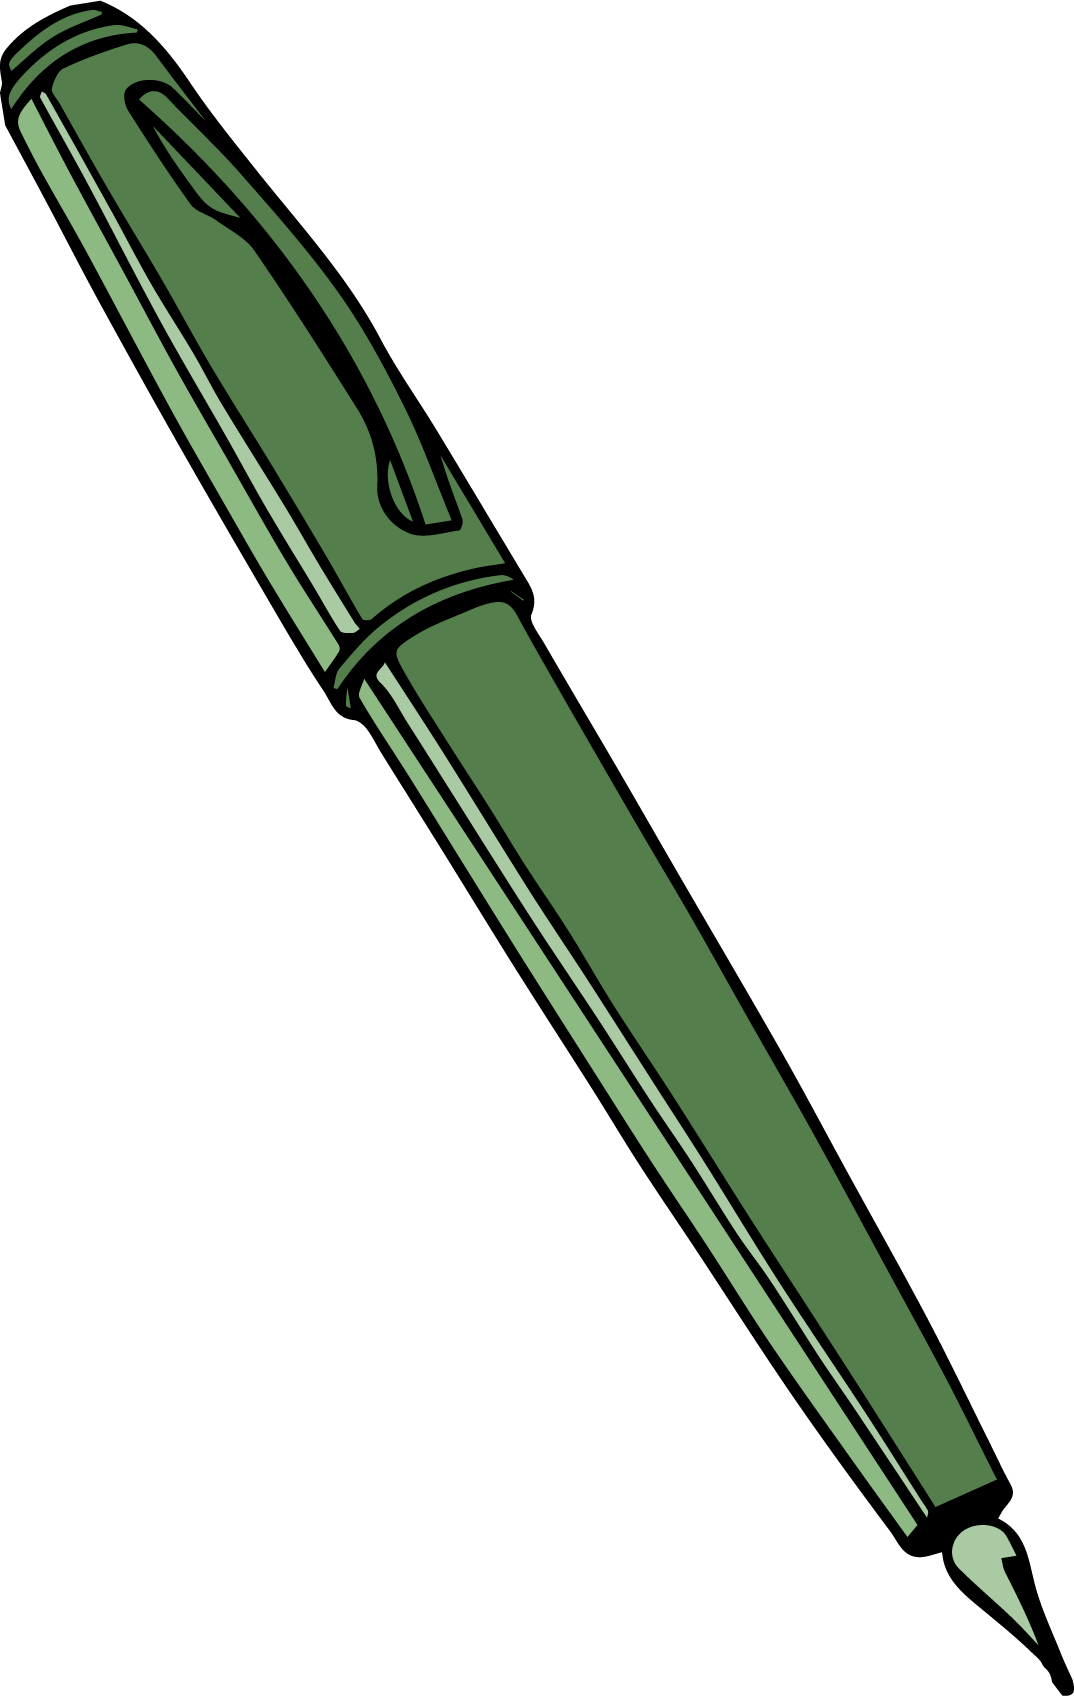 Clipart images pen. Calligraphy png clipartly comclipartly